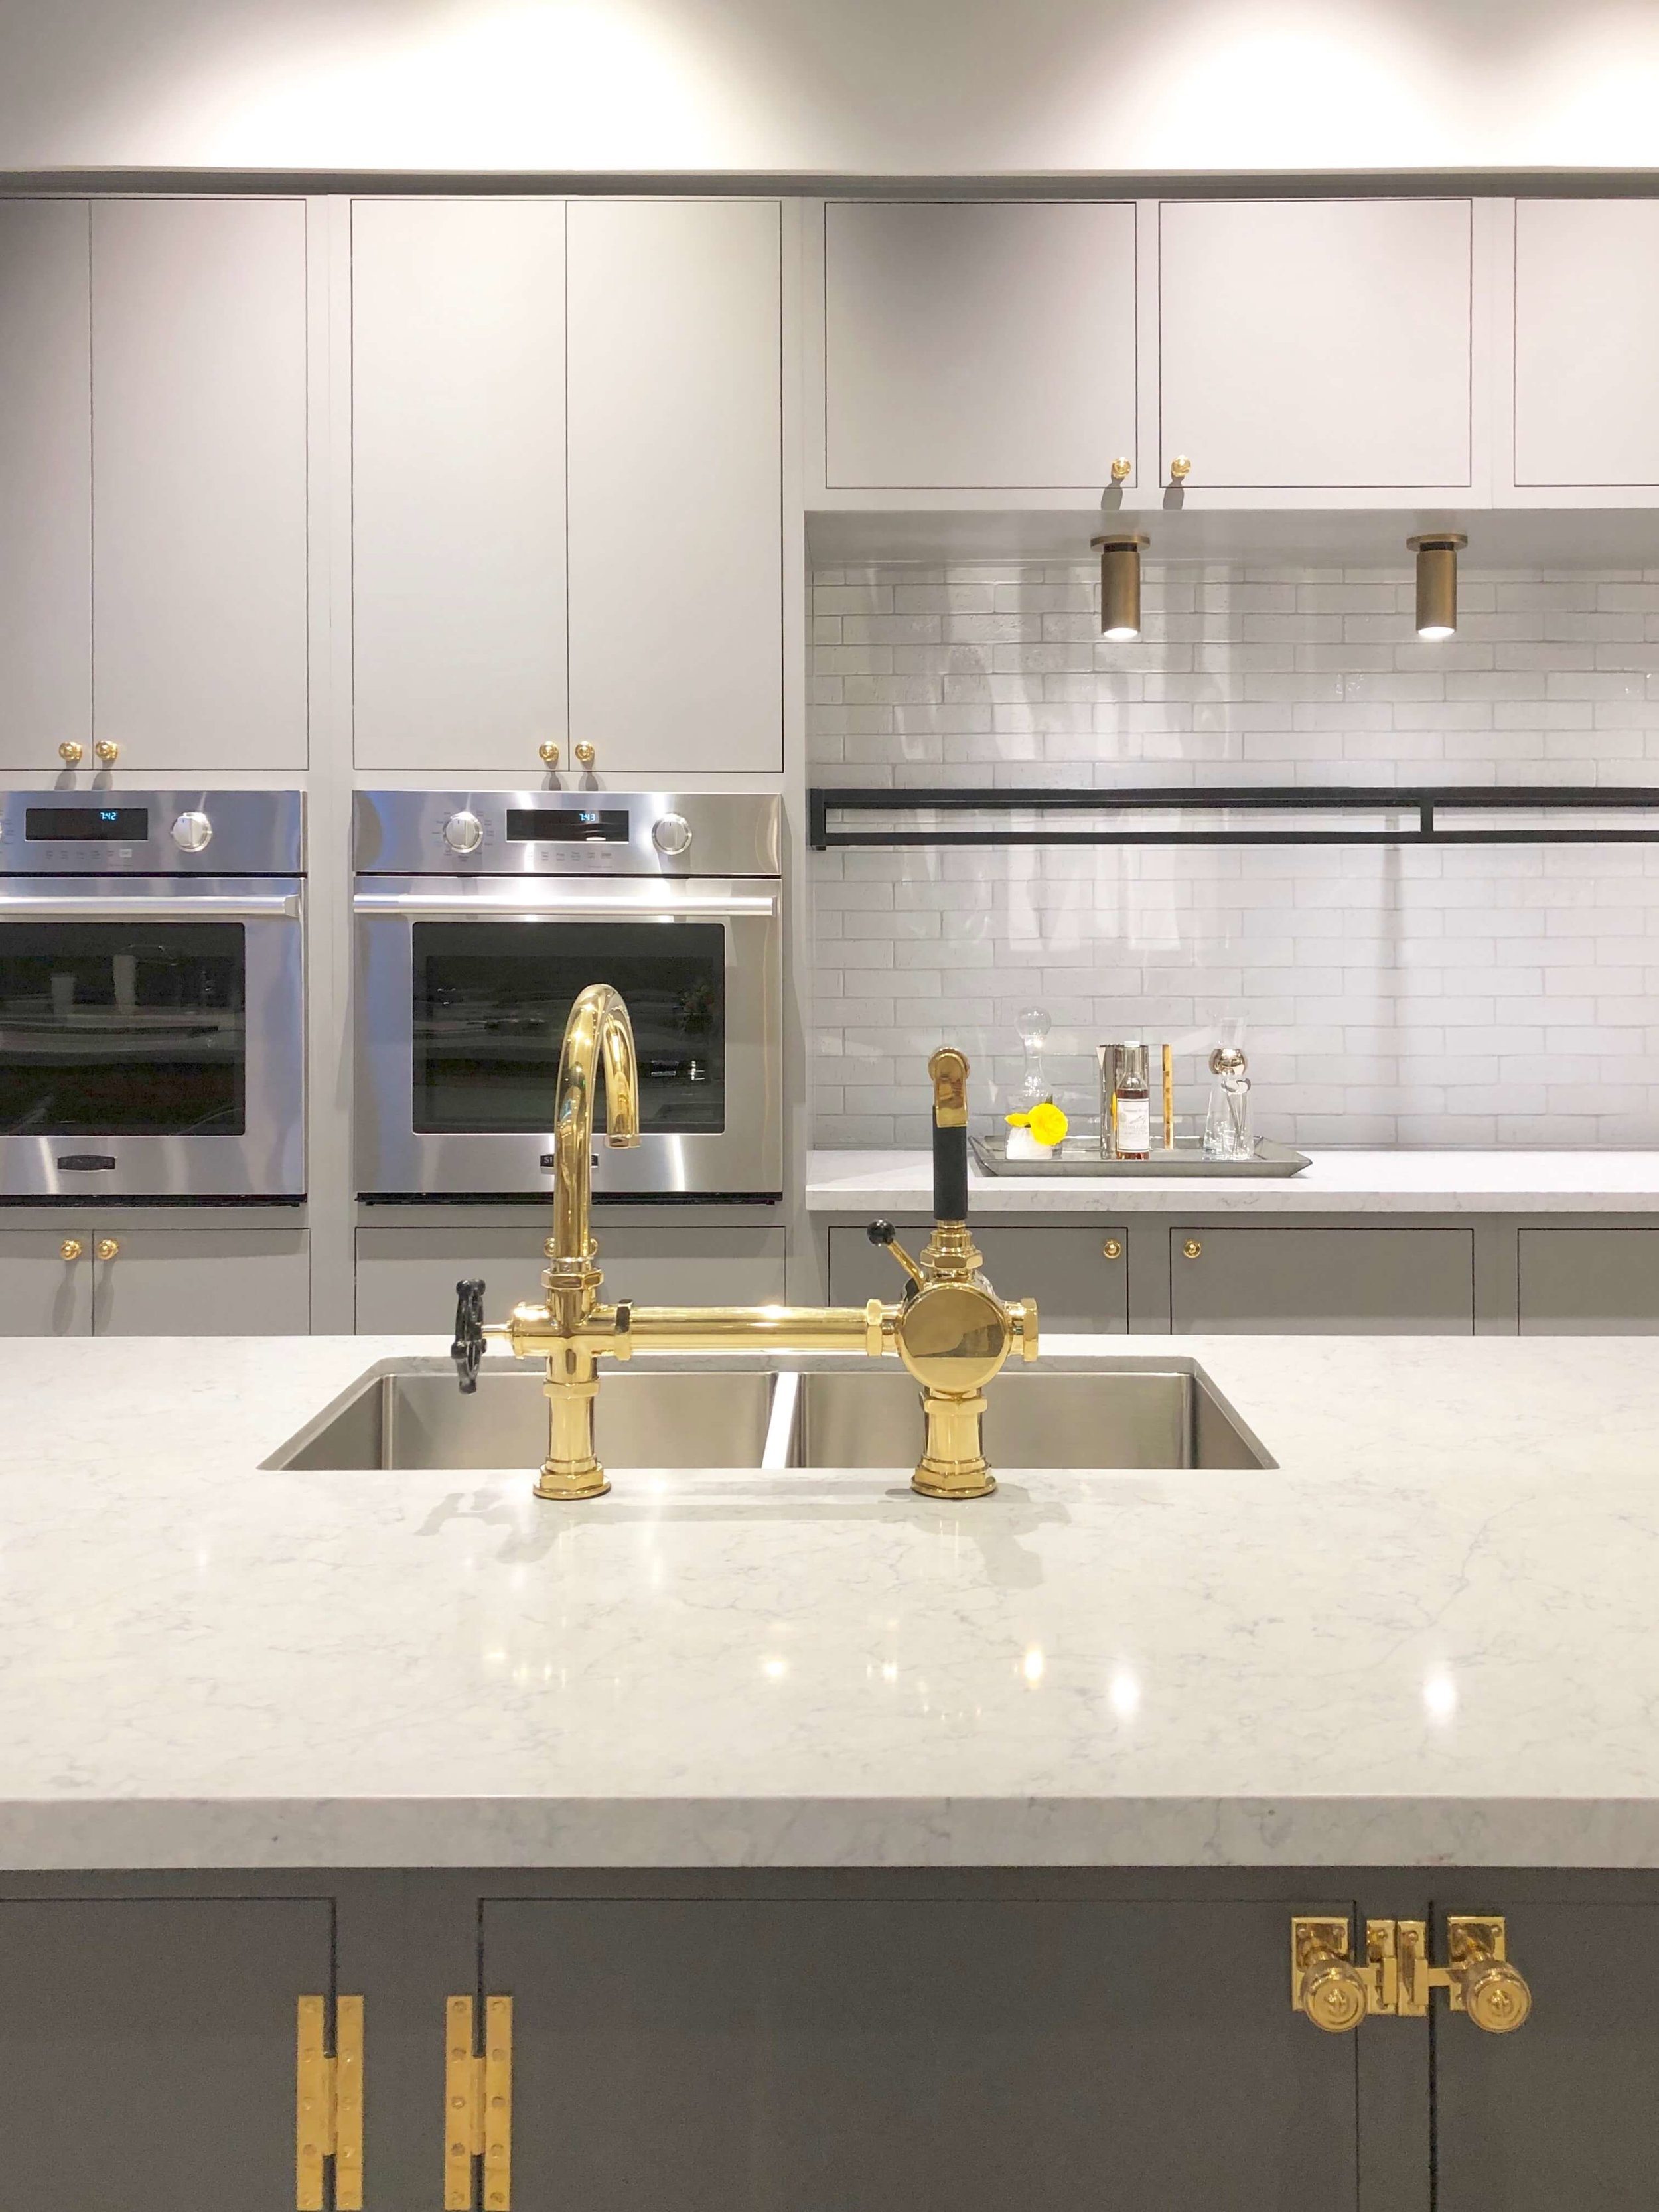 Kitchen with brass hardware, faucets and SKS Appliances | SKS Appliances Experience and Design Center, Napa